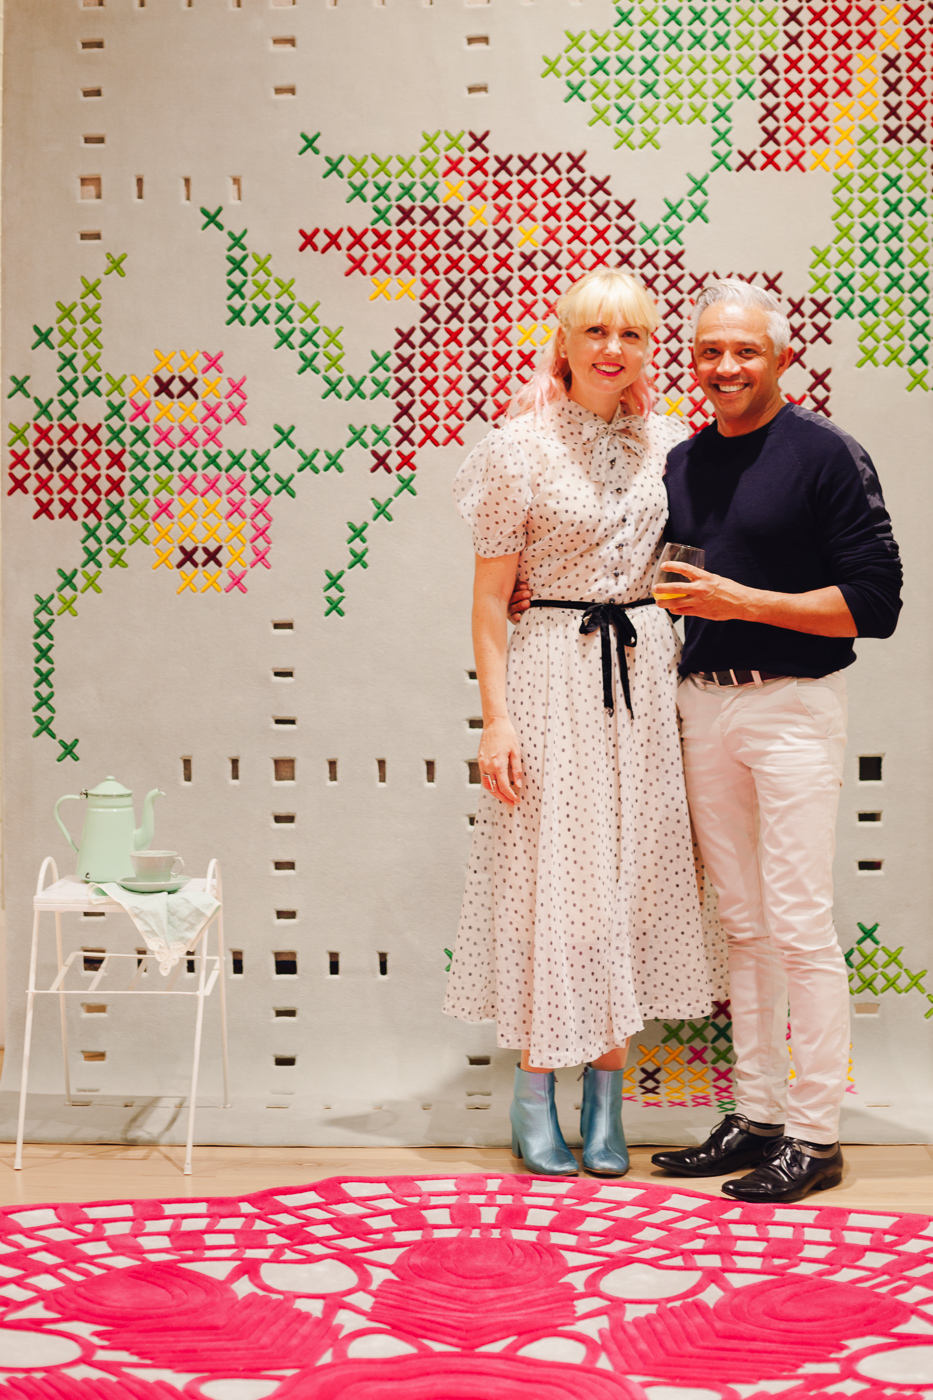 With Richard Misso | NEW AGAIN by Petrina Turner Design for Designer Rugs | The launch event